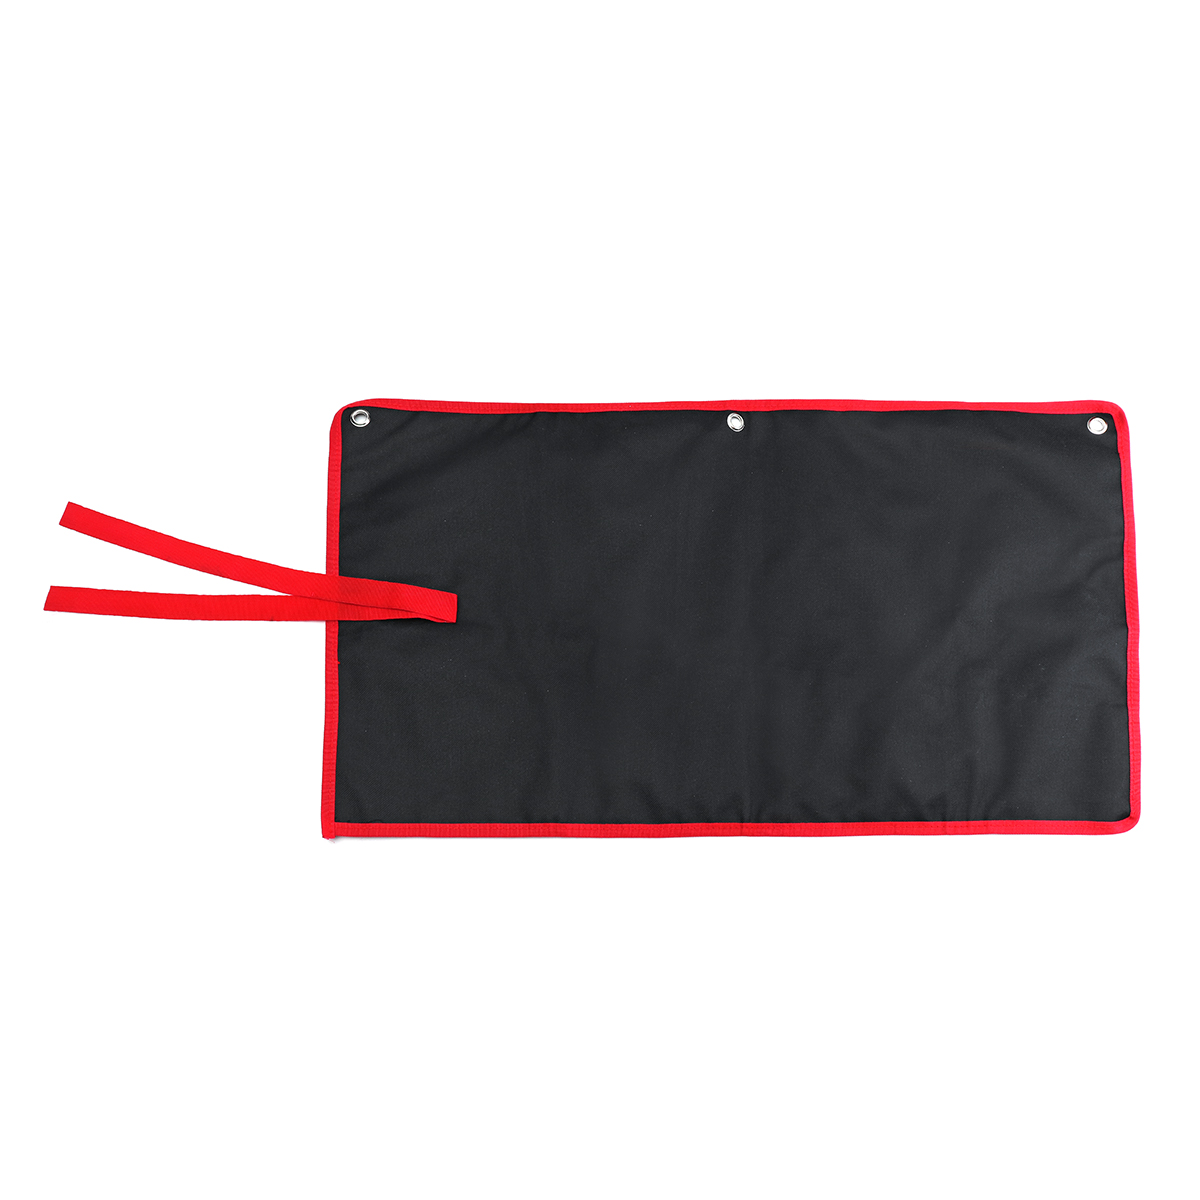 14 Slot Portable Reparing Tools Bag Chef Knife Roll Bag Kitchen Cooking Accessories Storage Pack